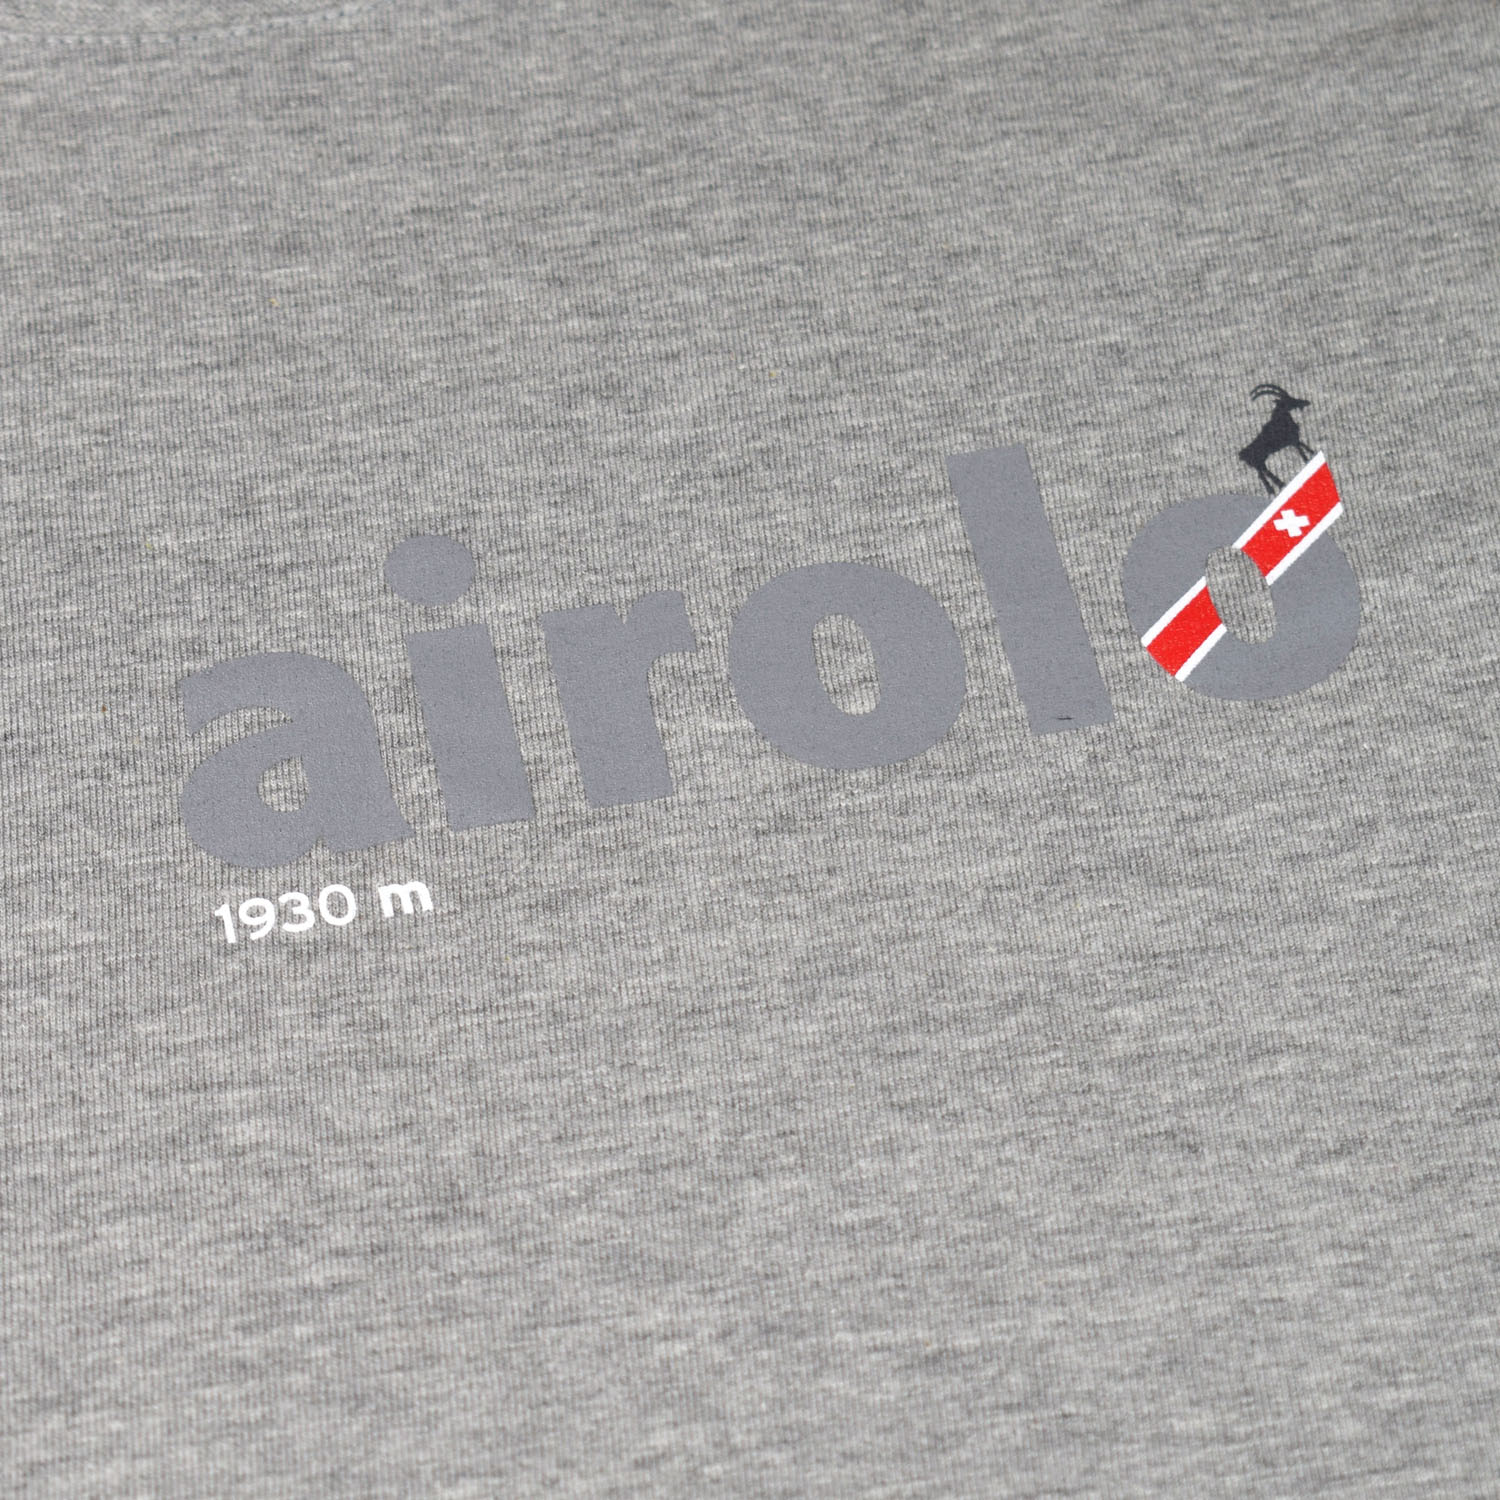 T-lab Airolo longsleeve t-shirt grey closeup